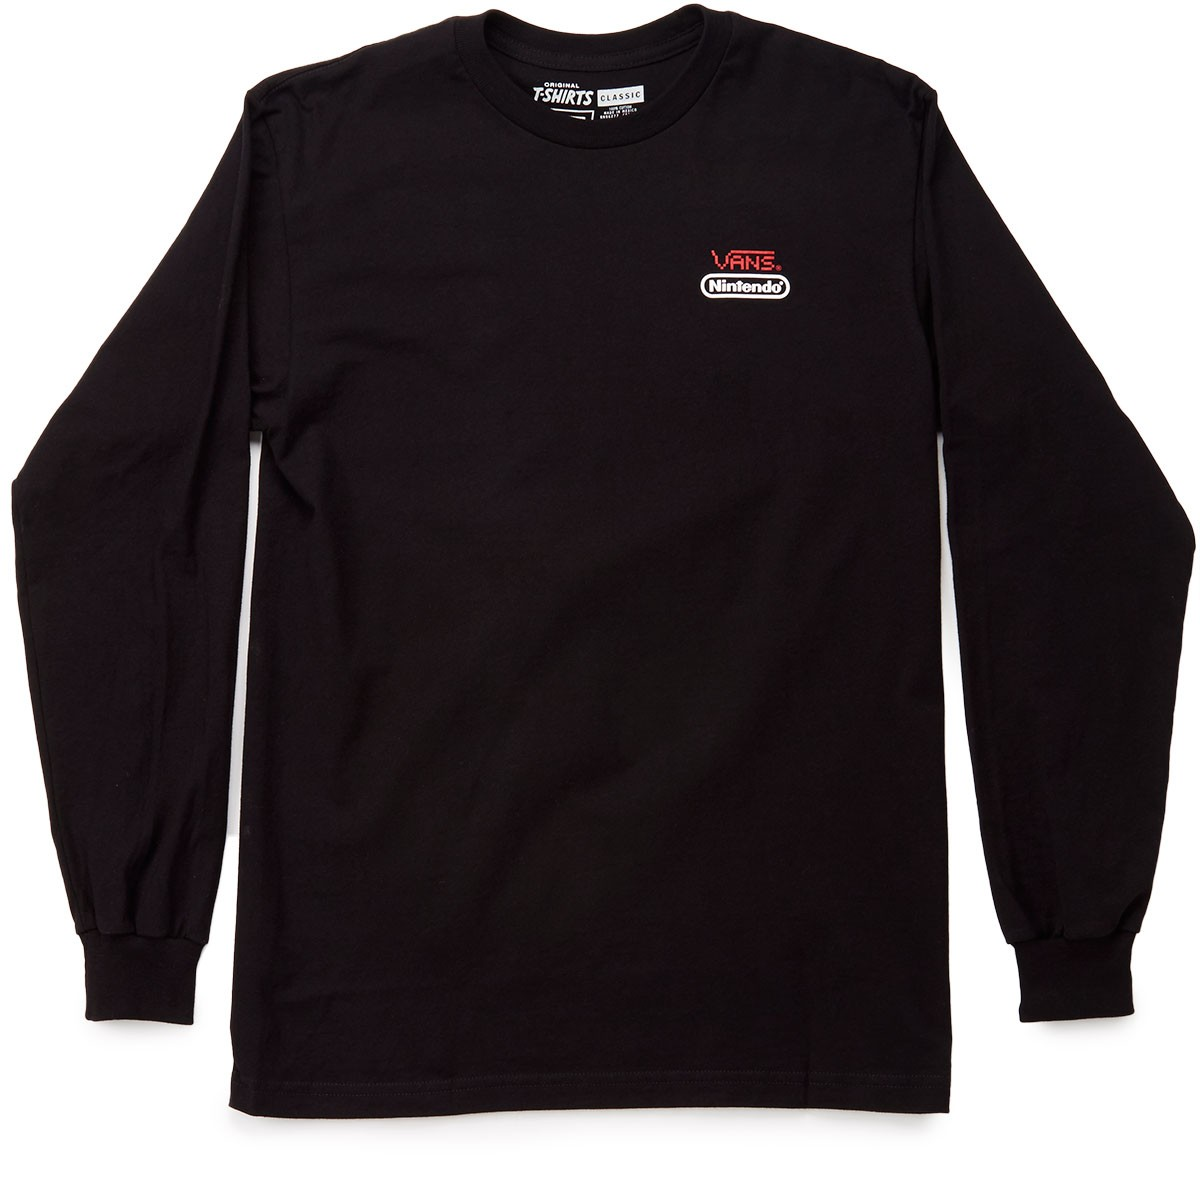 469dd552ee Vans X Nintendo Long Sleeve T-Shirt - Black